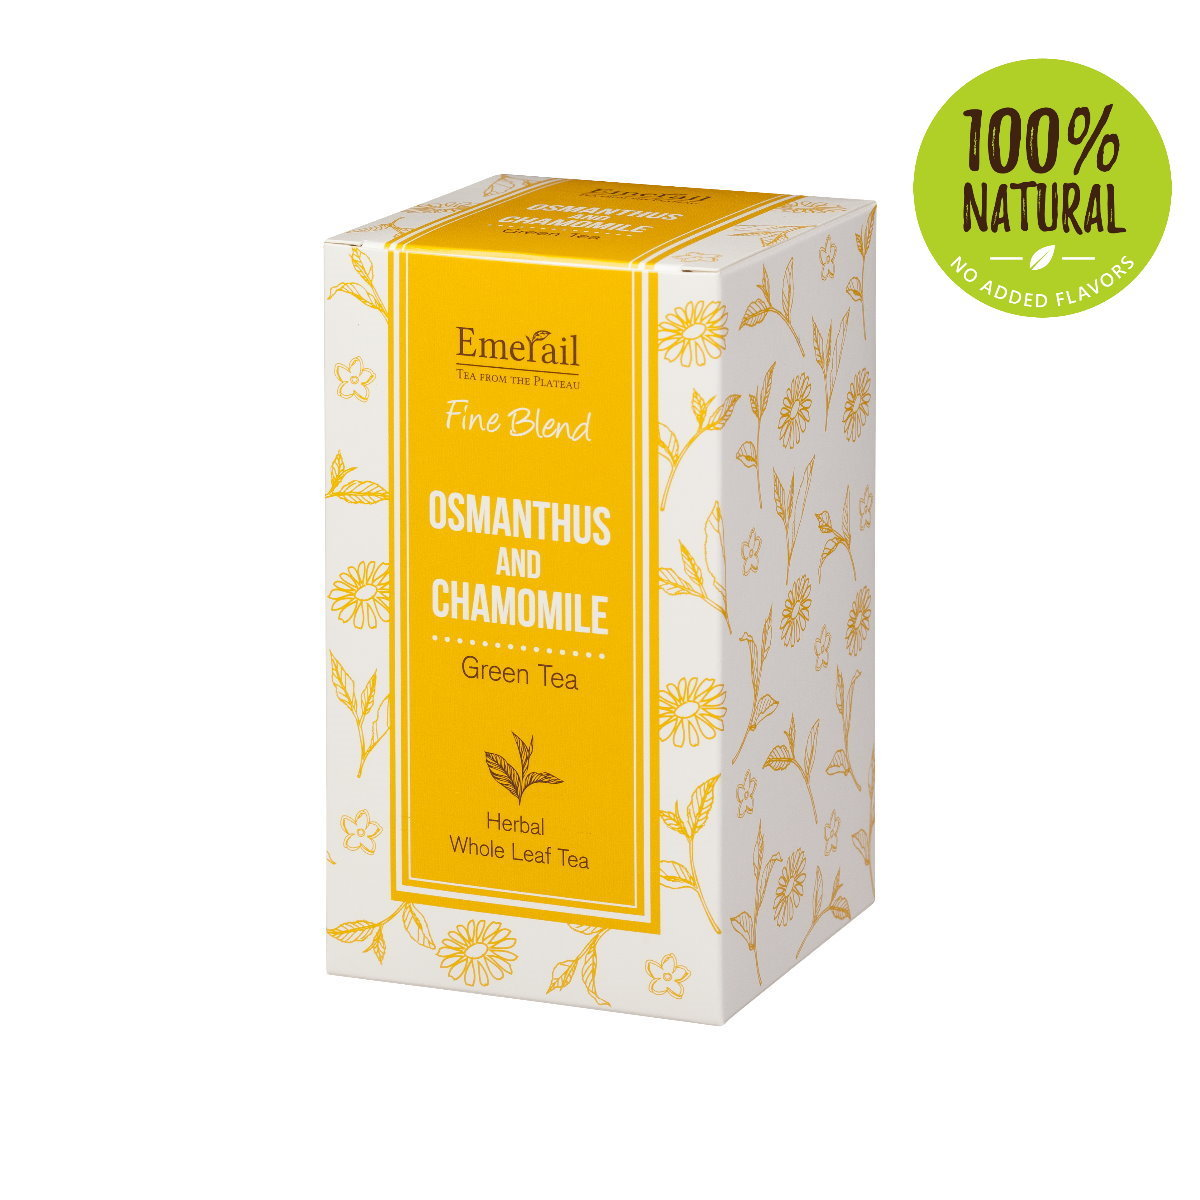 Emerail - Osmanthus And Chamomile Green Tea (Fine Blend)